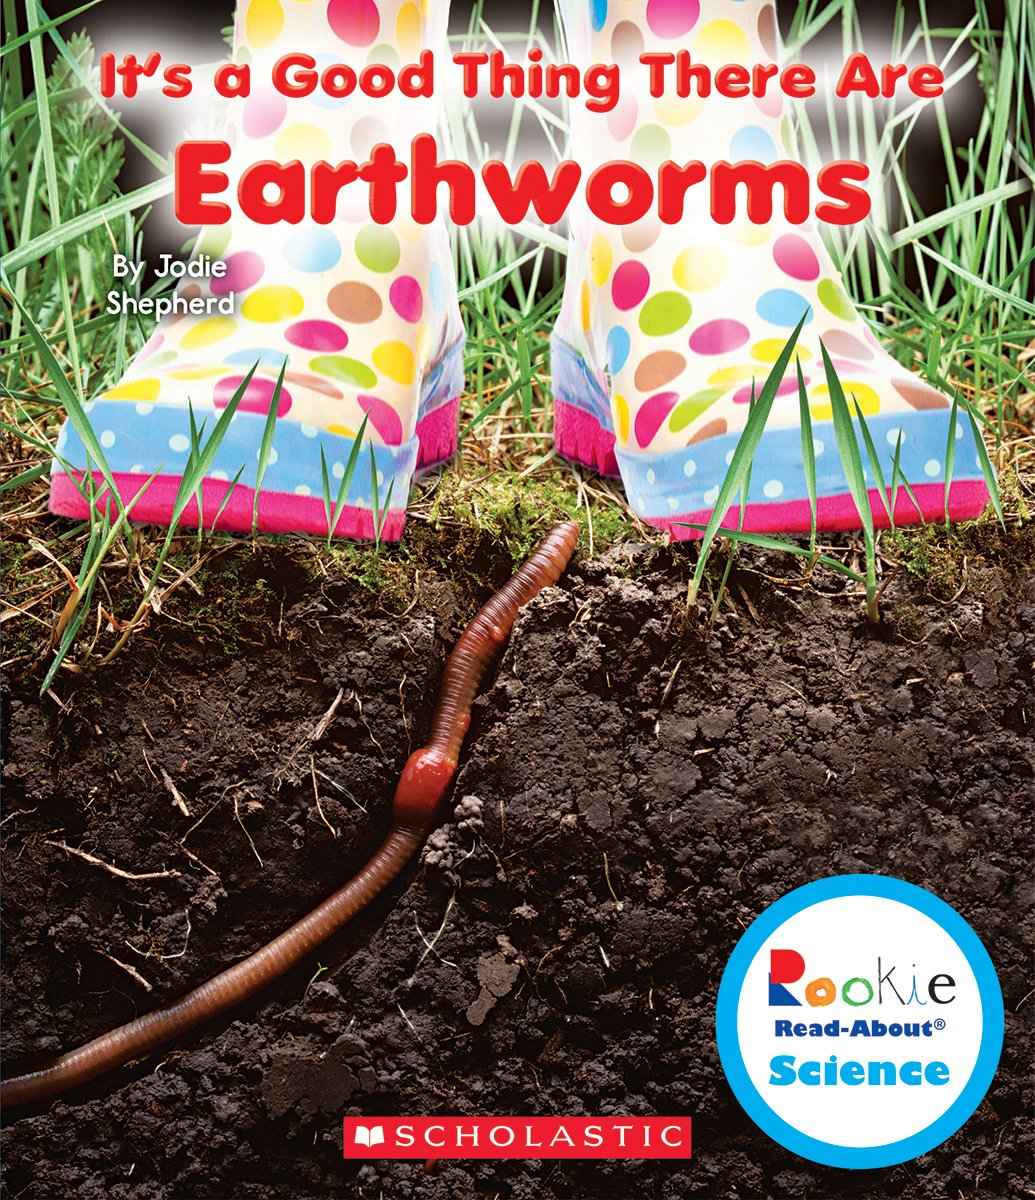 It's a Good Thing There Are Earthworms (Rookie Read-About Science) ebook